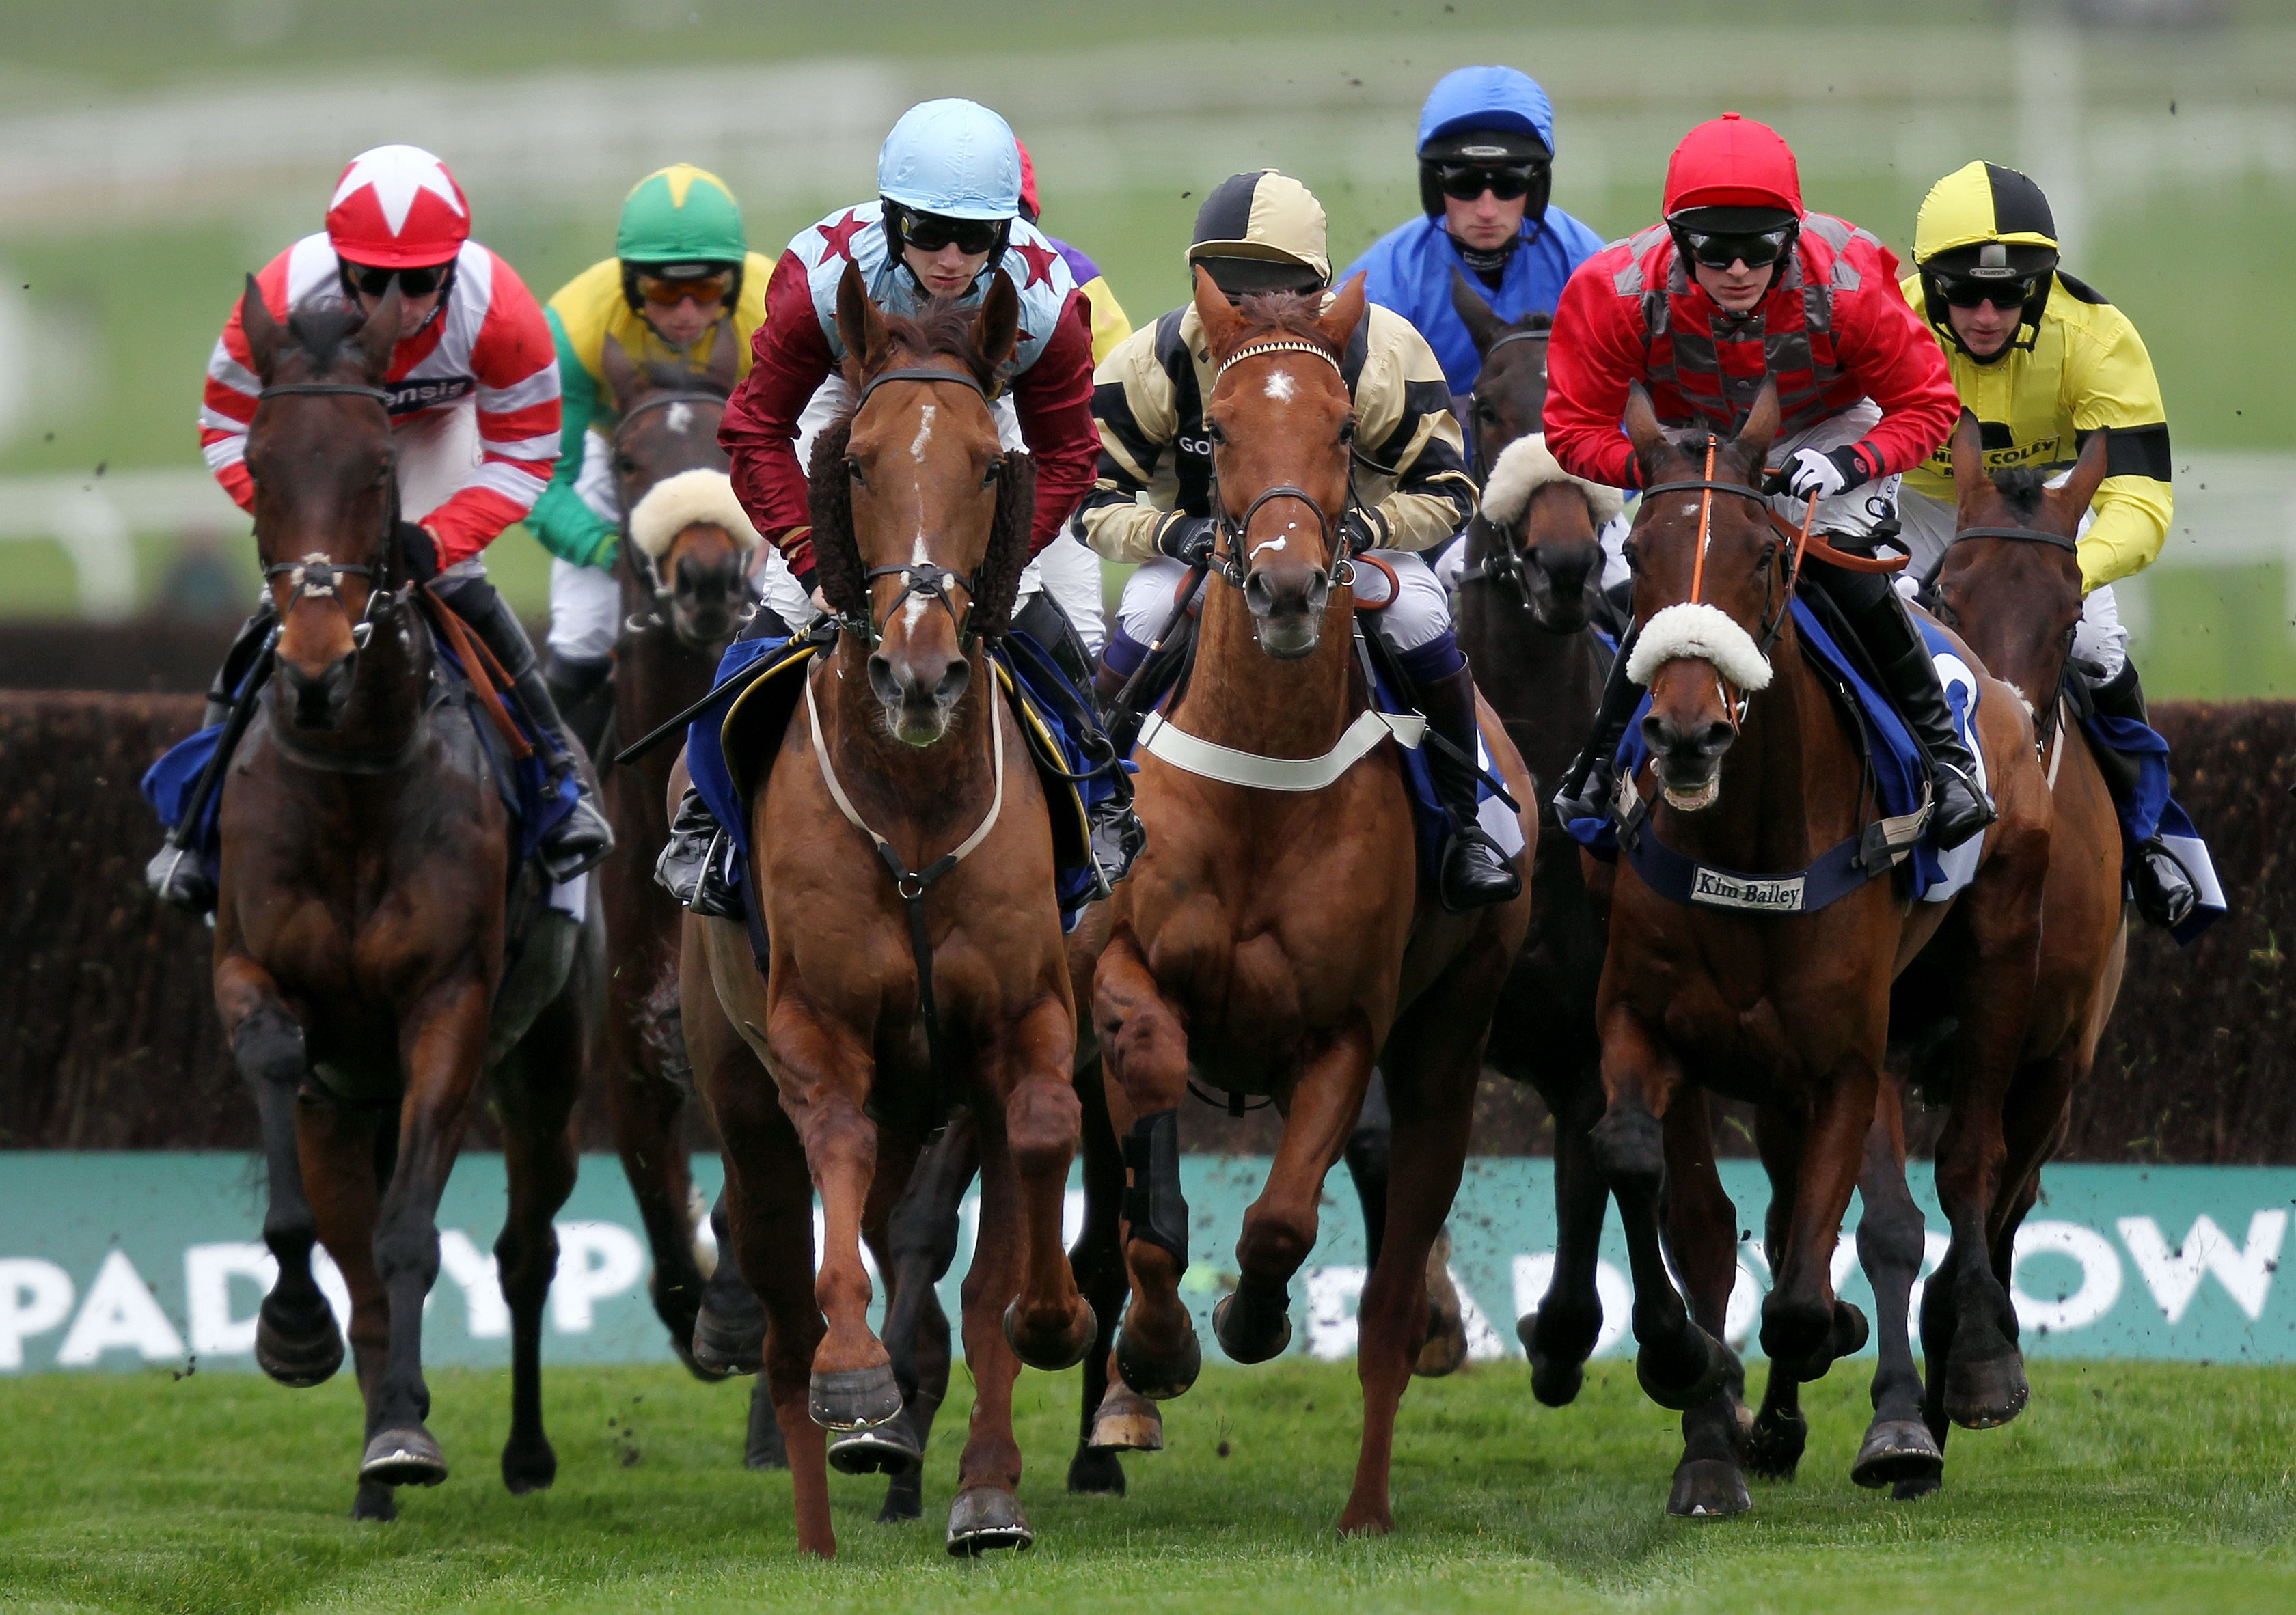 Increase Your Odds Of Winning On Horse Racing